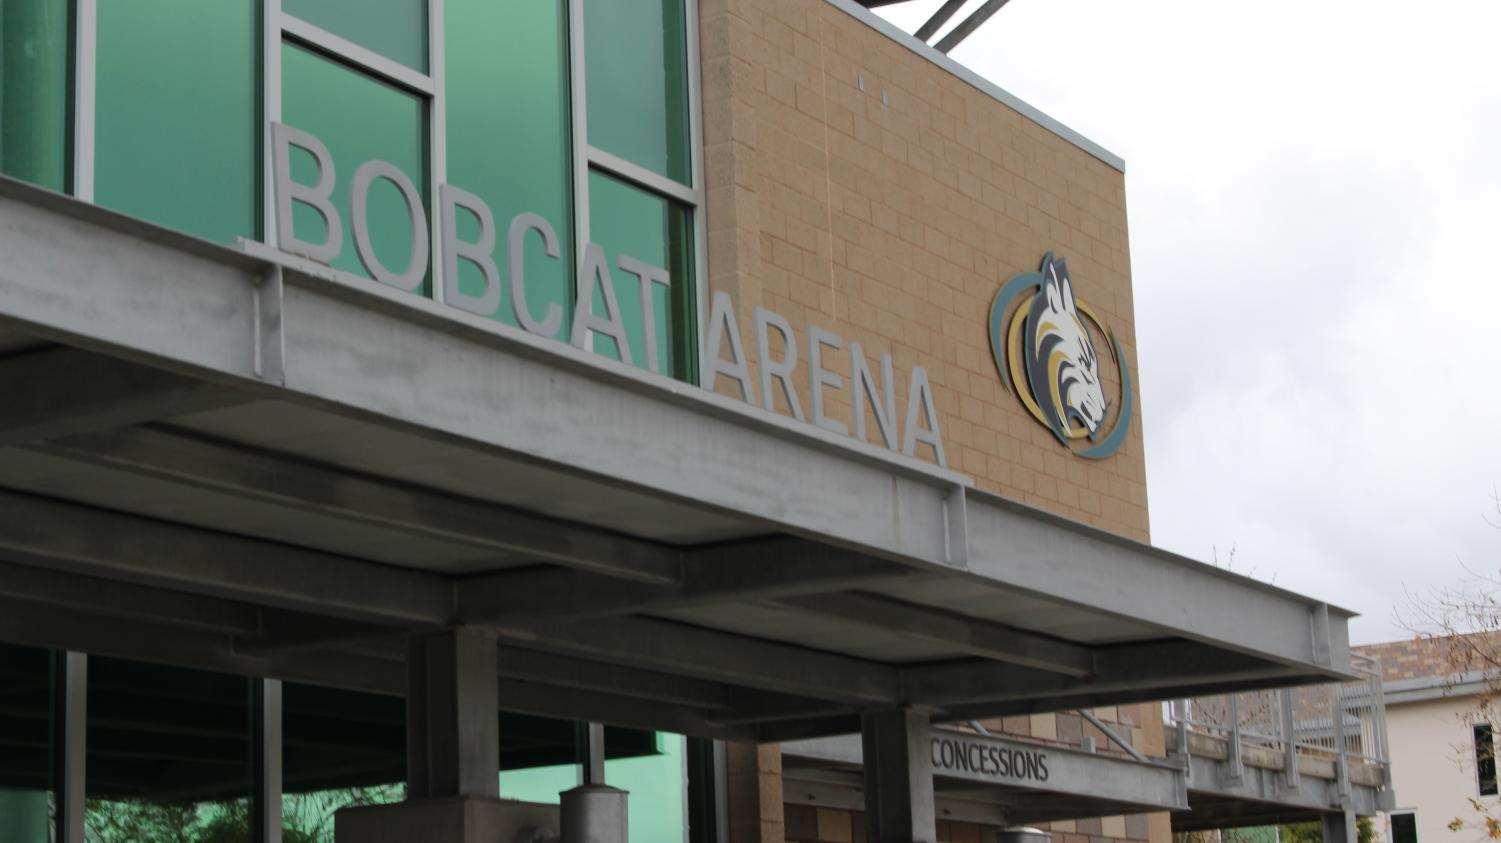 An empty entrance to the Bobcat Arena marking the end of another basketball season.